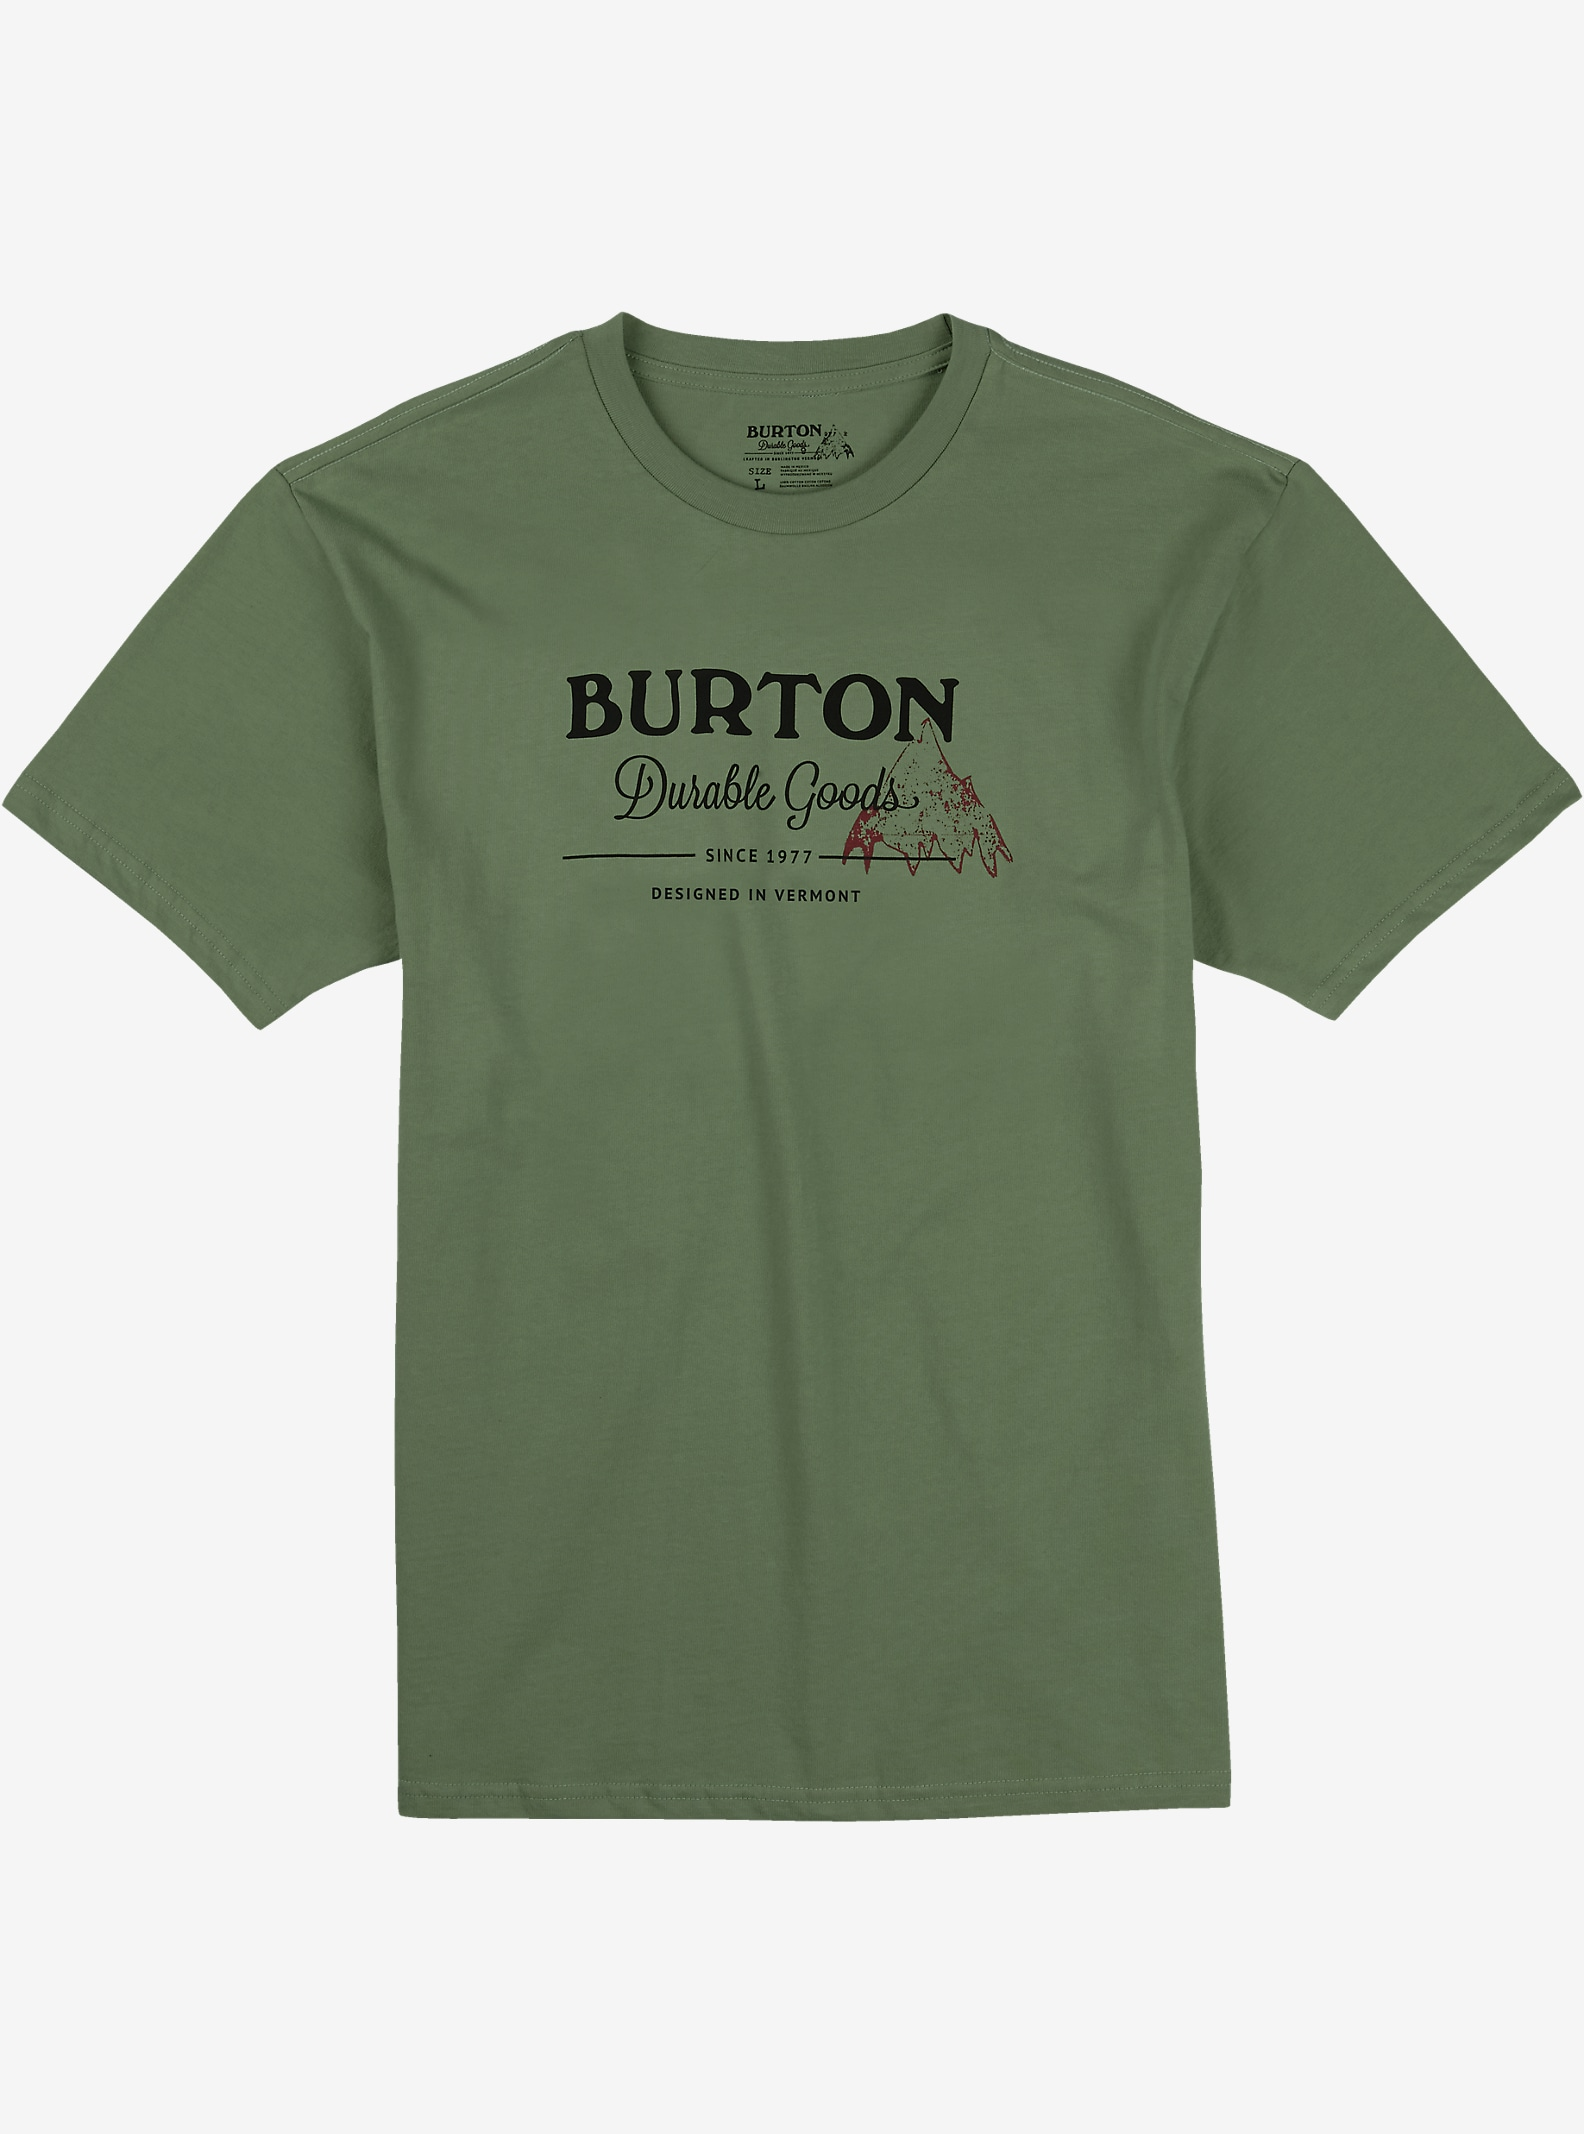 Burton Durable Goods Short Sleeve T Shirt shown in Military Green